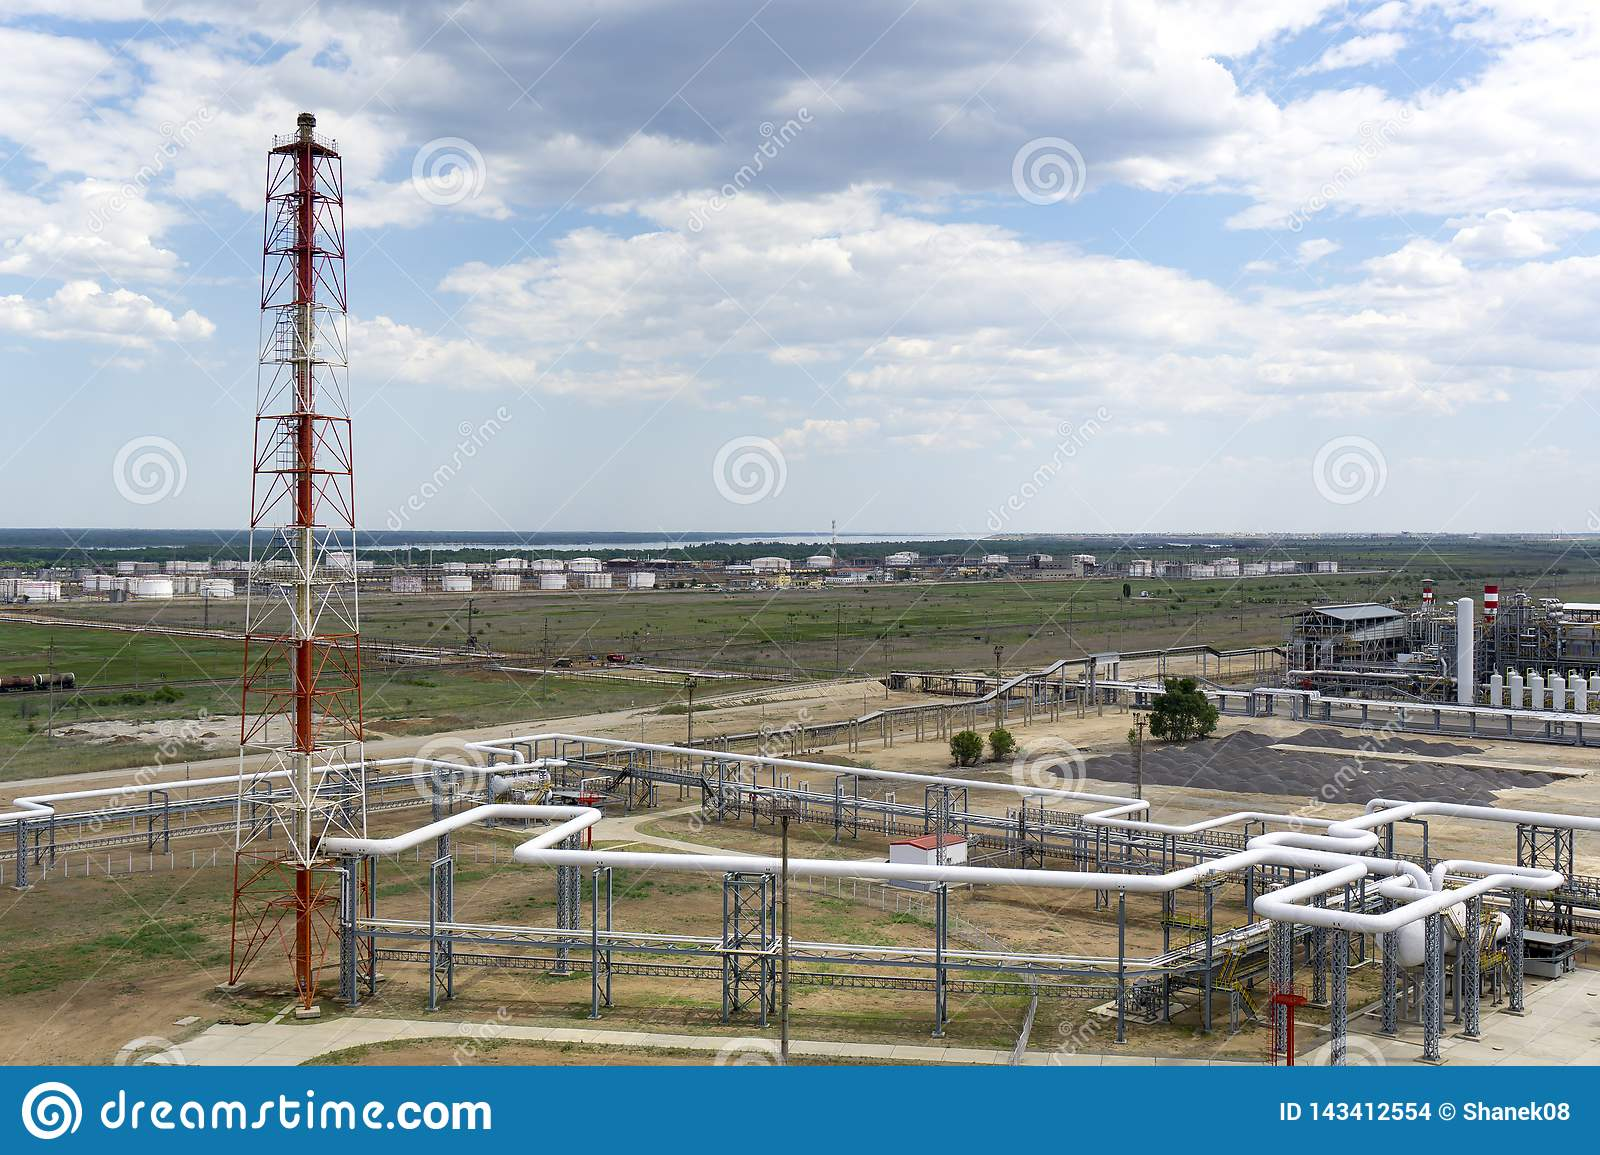 Oil depot. railway, transportation, tank, train, at a refinery in Russia. equipment and complexes for hydrocarbon processing. chim